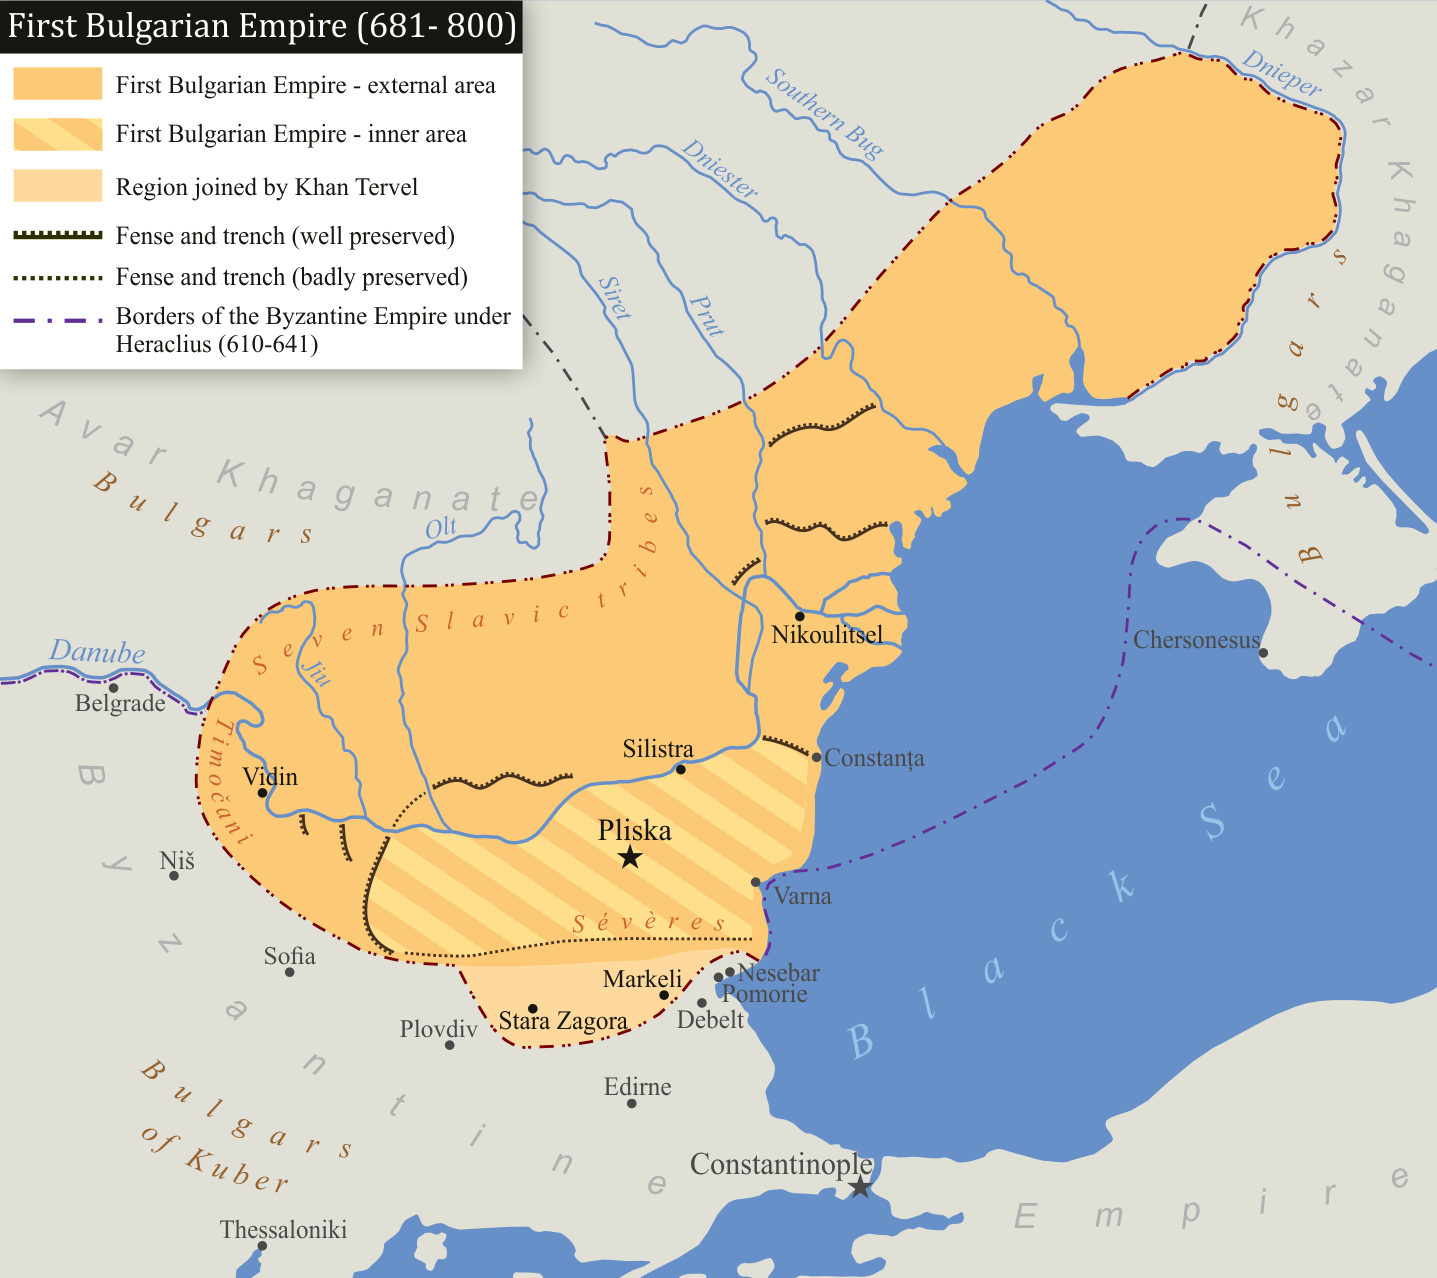 File:First Bulgarian Empire (681-800) v1.png